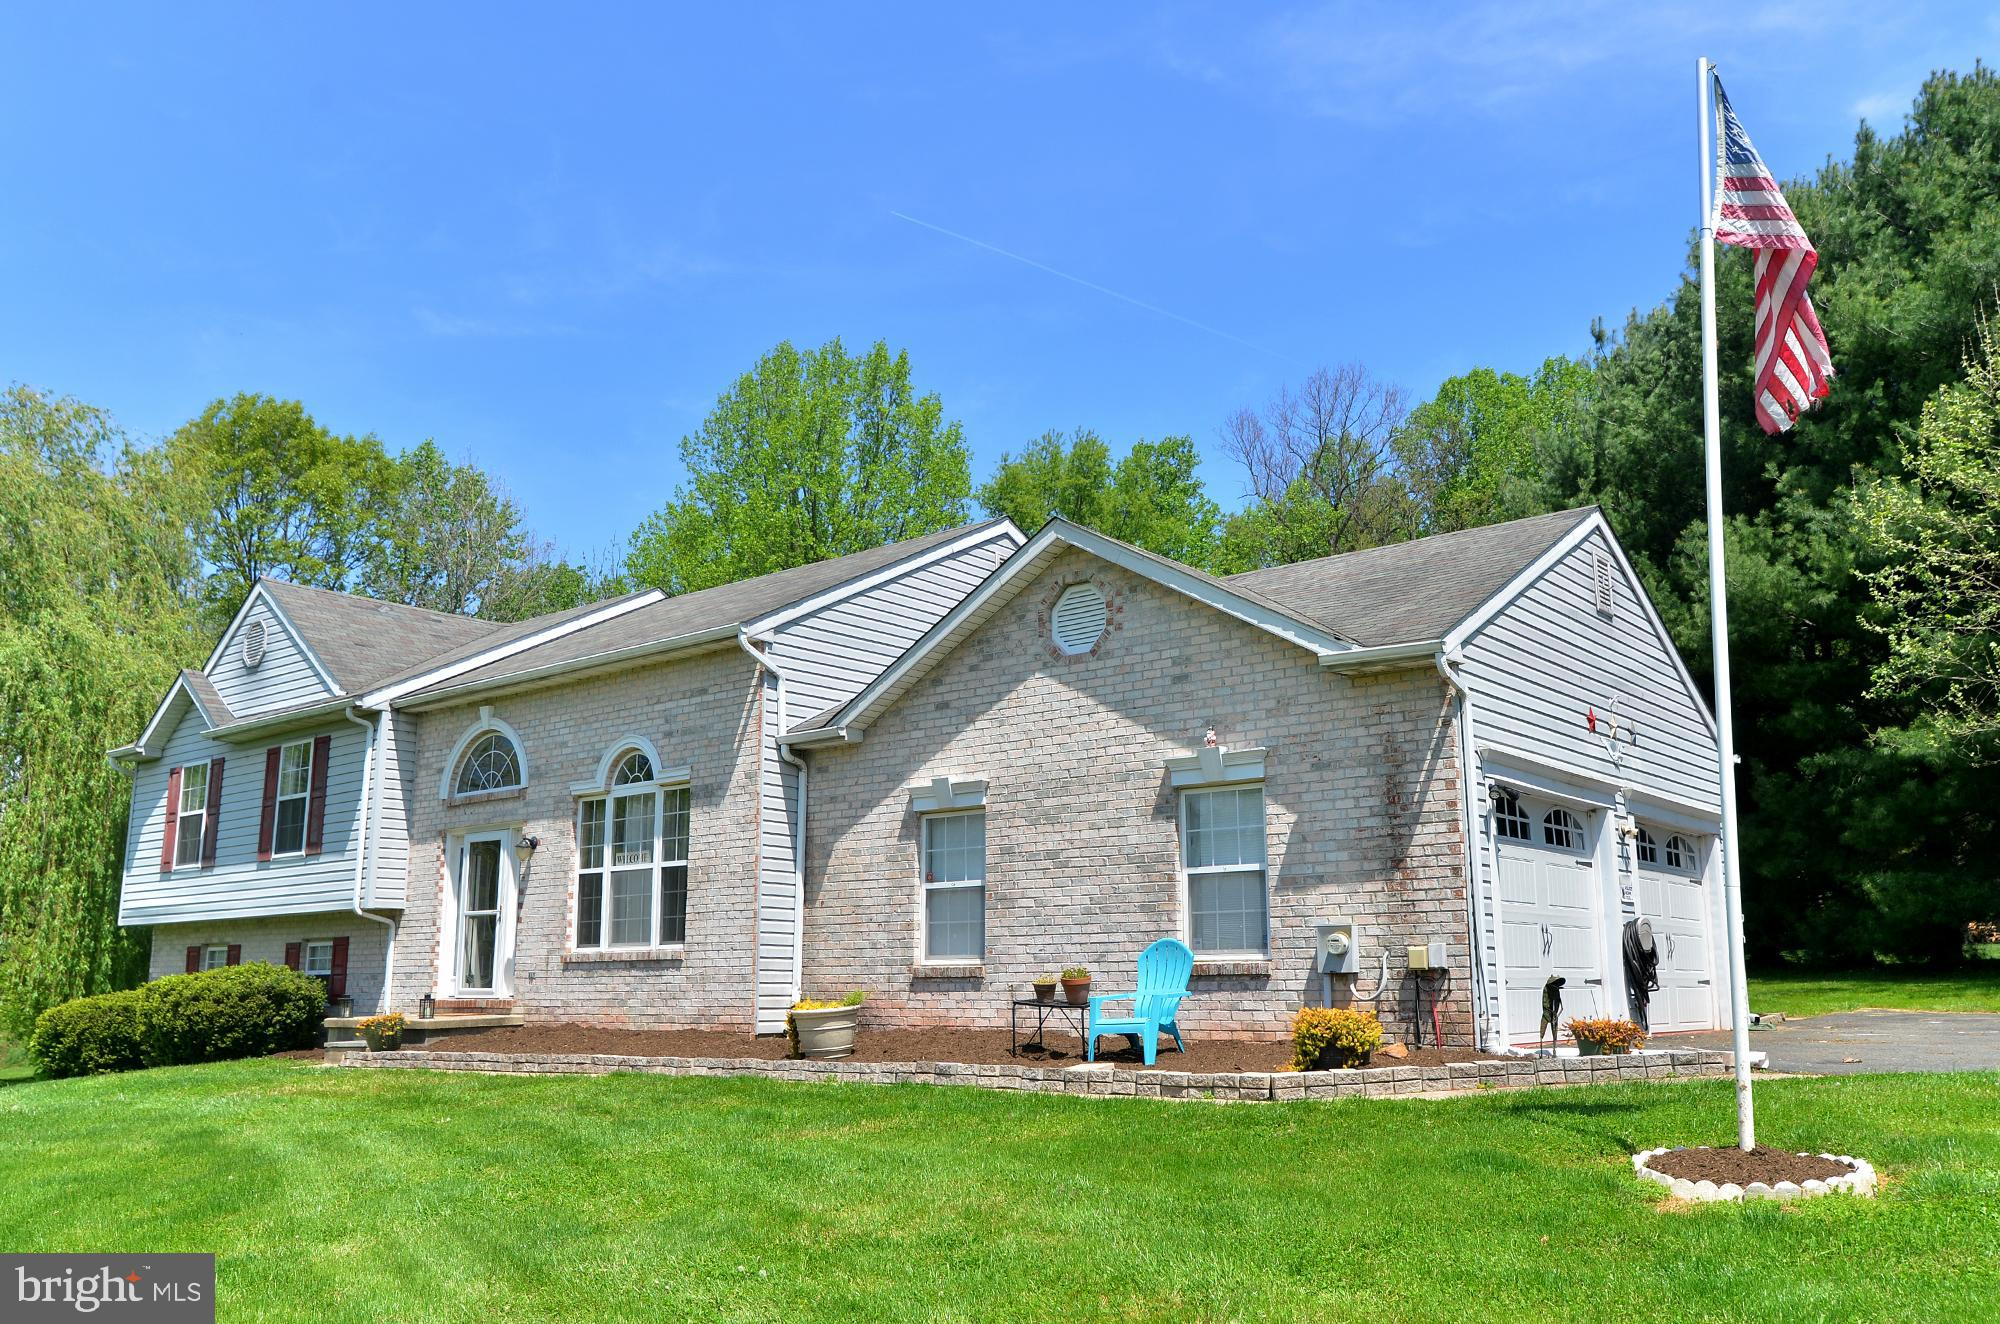 Well maintained split level located in a quiet neighborhood.  New addition added in 2002 with a main